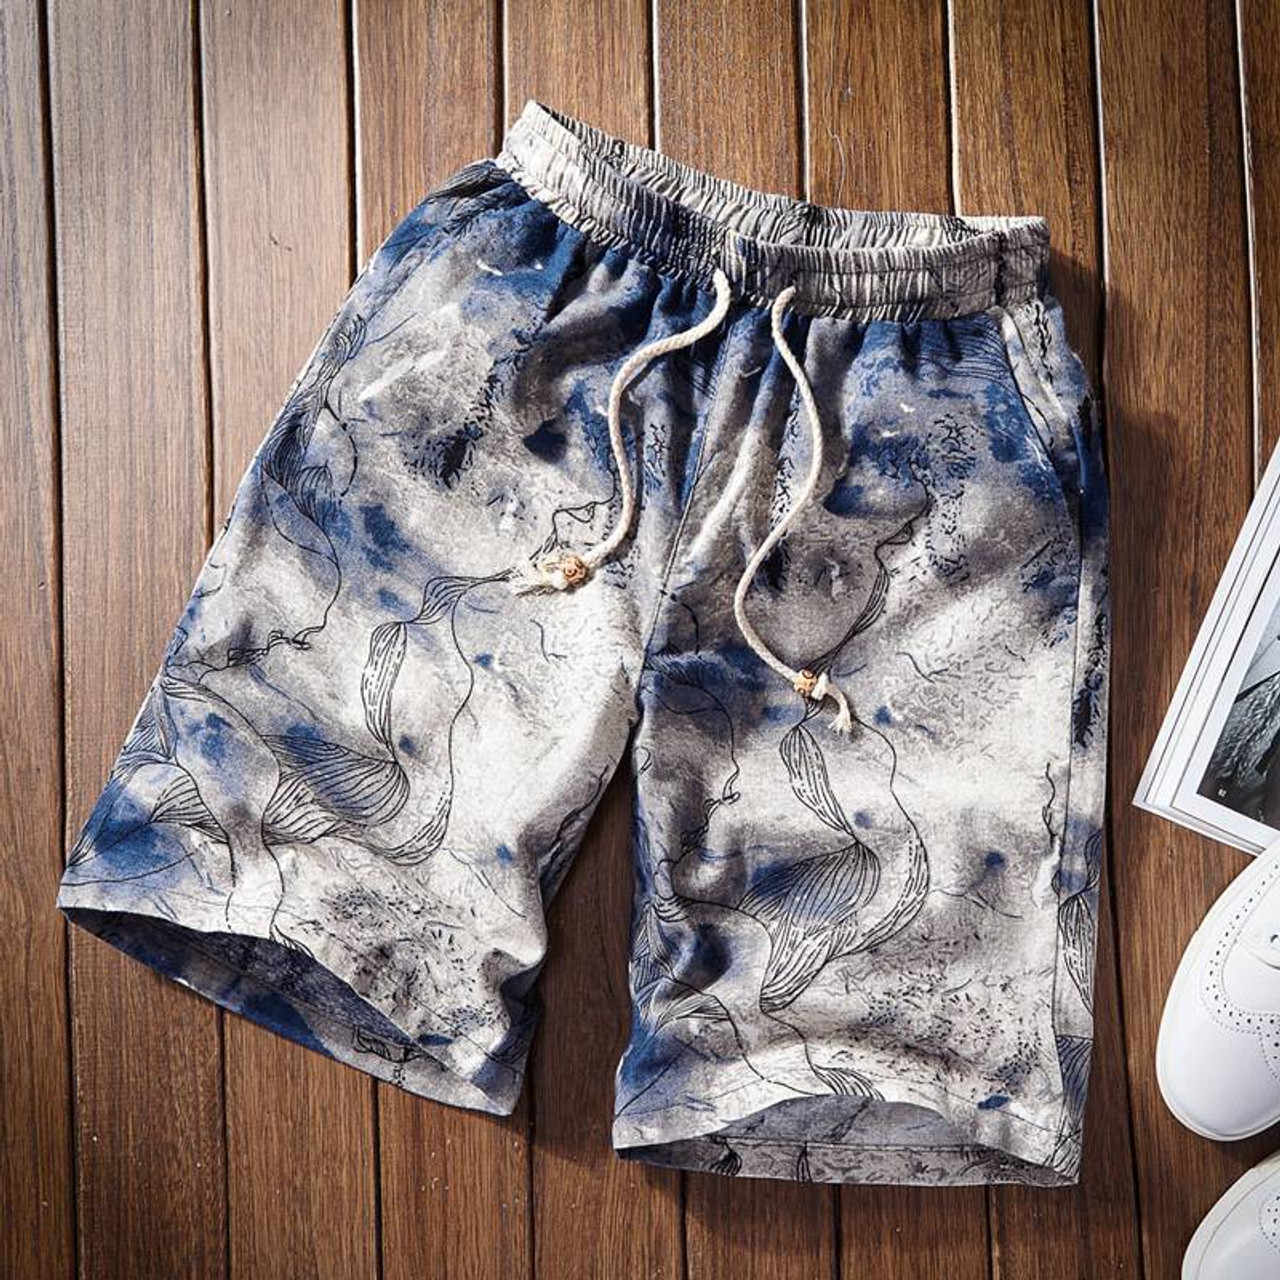 5a53a2b6c3 New arrive Mens Shorts Surf Board Shorts Summer Sport Beach Homme Leisure  and fashion Short Pants ...